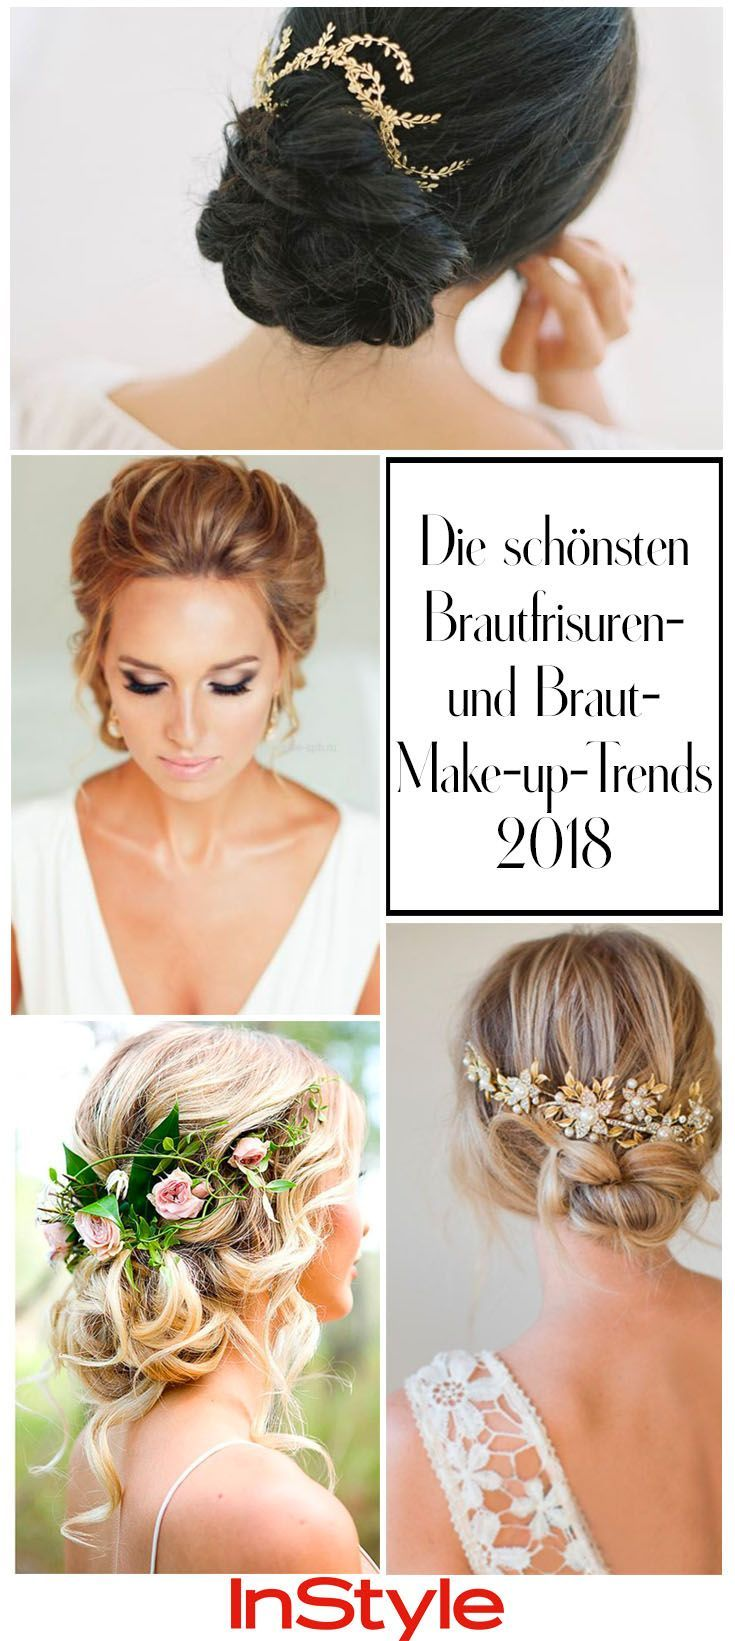 Photo of The most beautiful bridal hairstyles and bridal makeup trends 2018